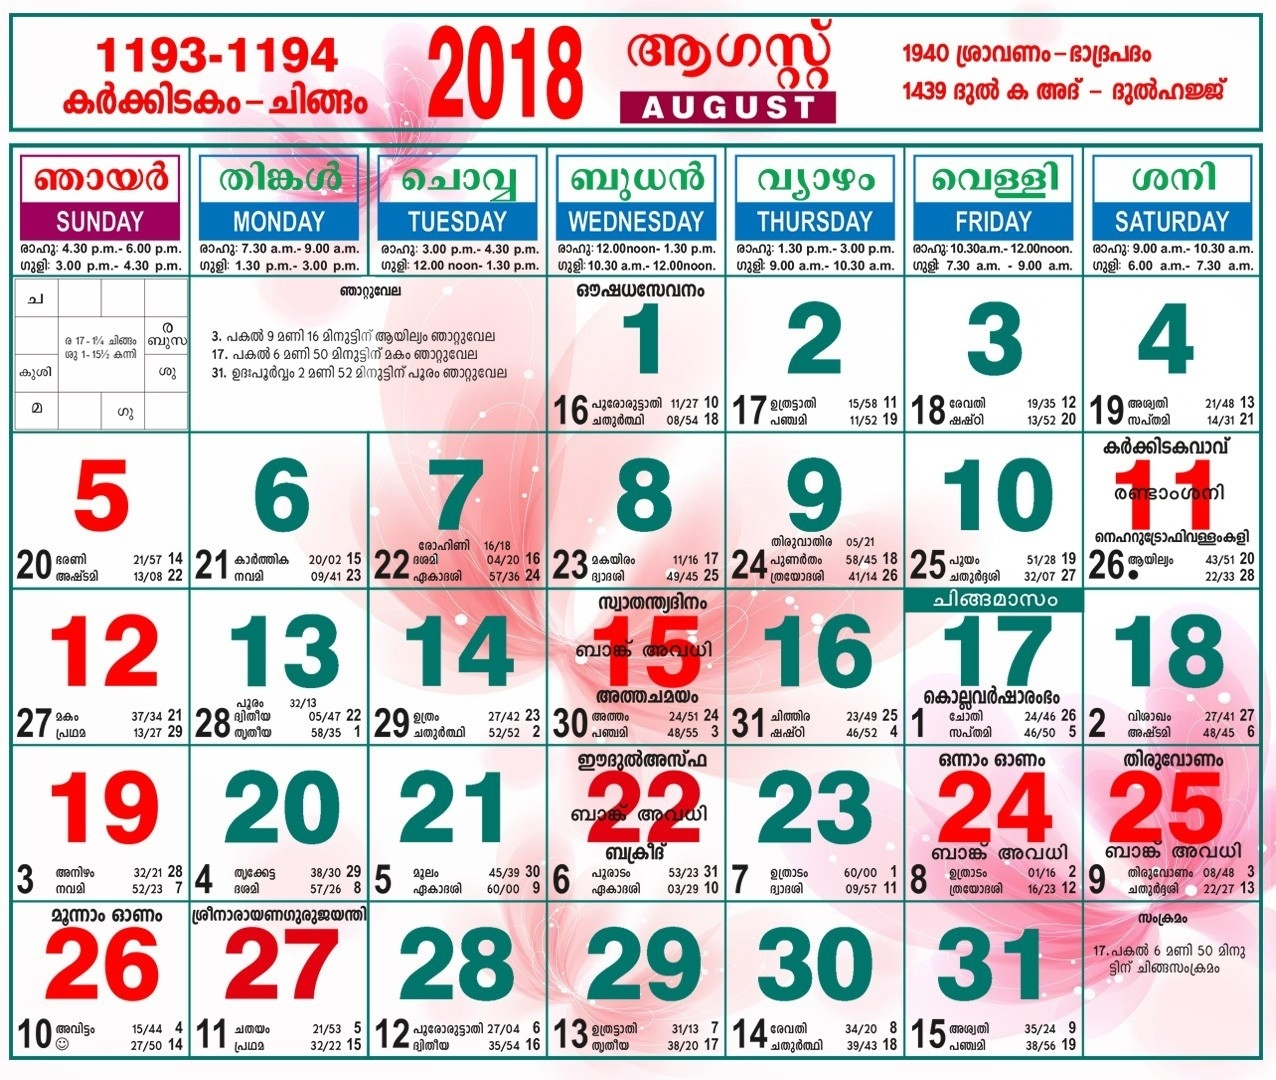 August 1996 Calendar And Malayalam Days | Holidays Calendar Template  1996 August 29 Malayalam Calendar